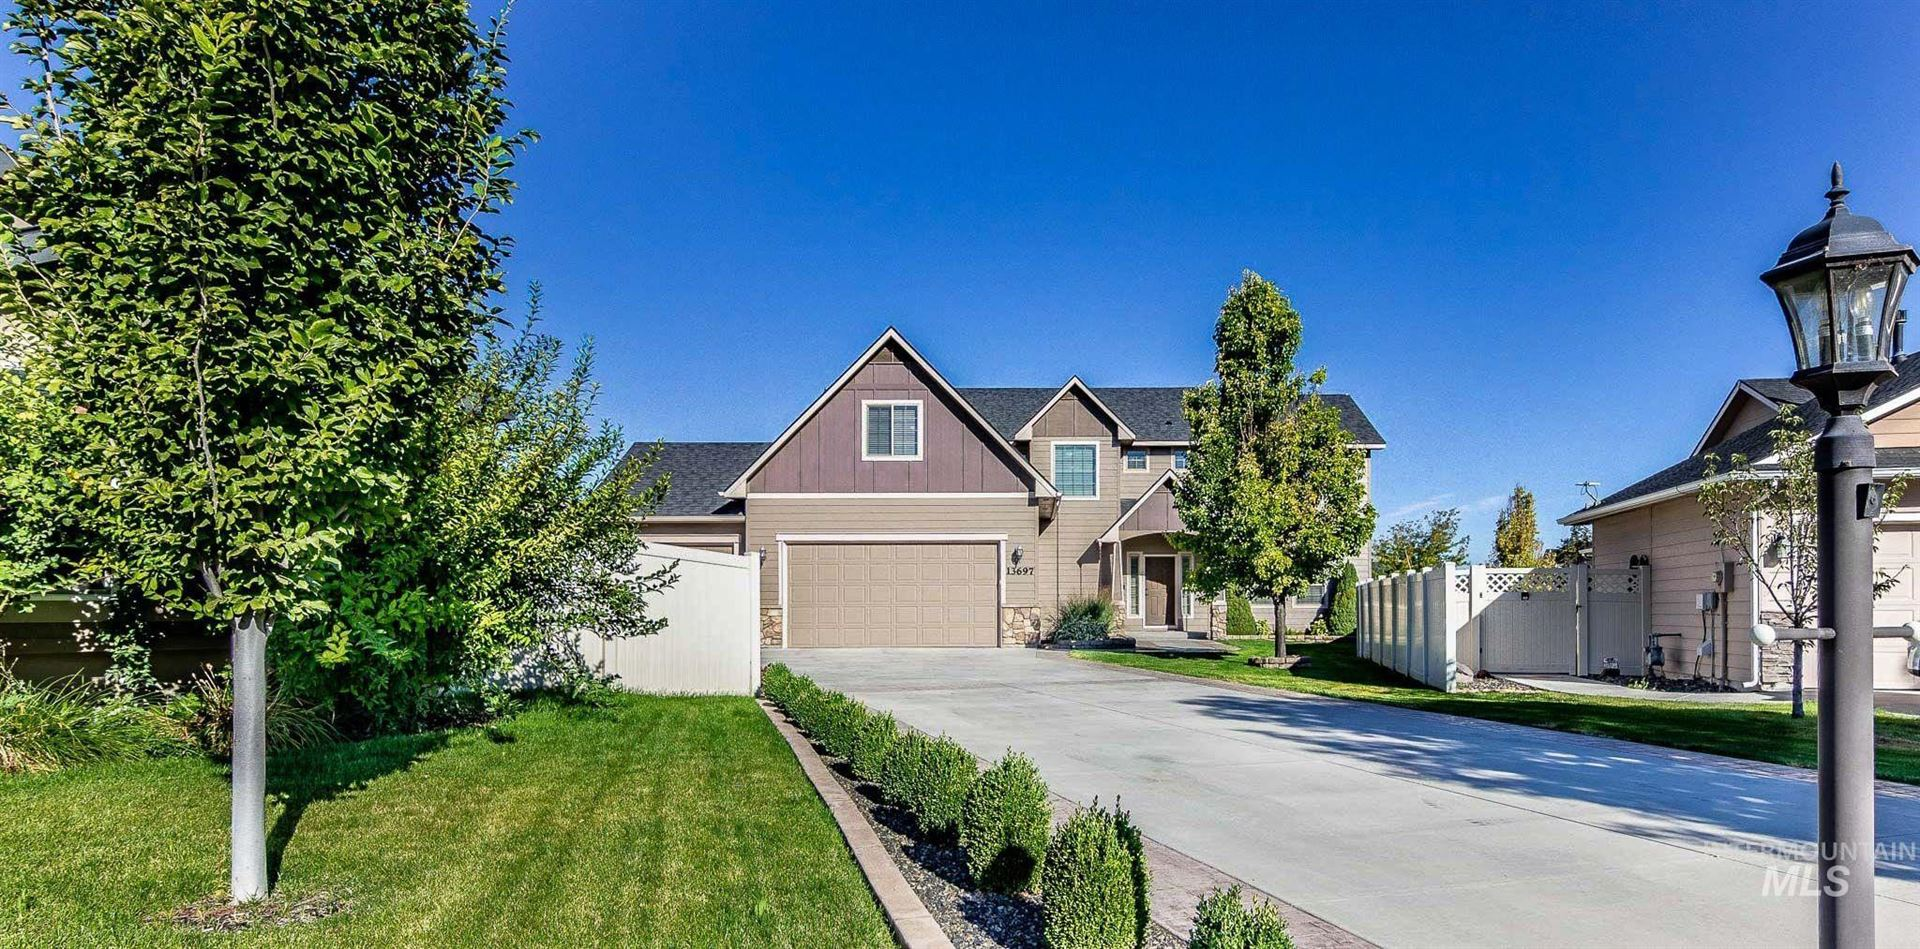 13697 S Coquille St, Nampa, ID 83651 - MLS#: 98818965